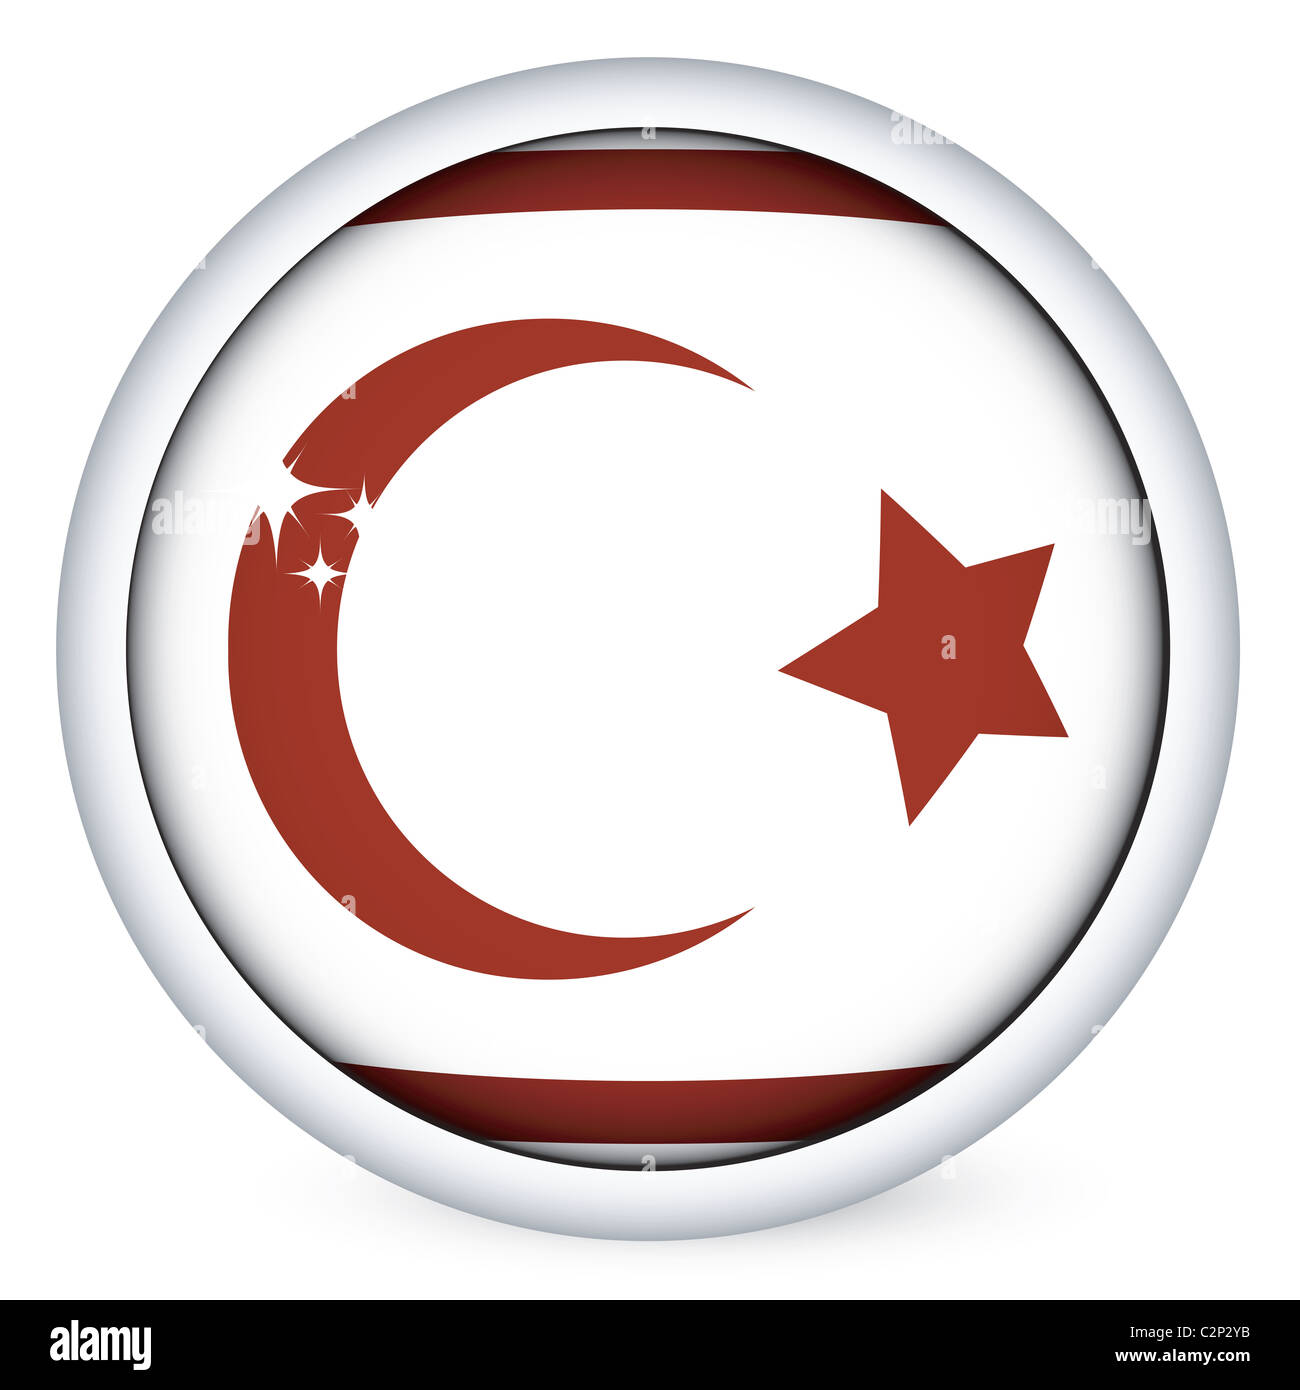 Northen Cyprus flag button - Stock Image